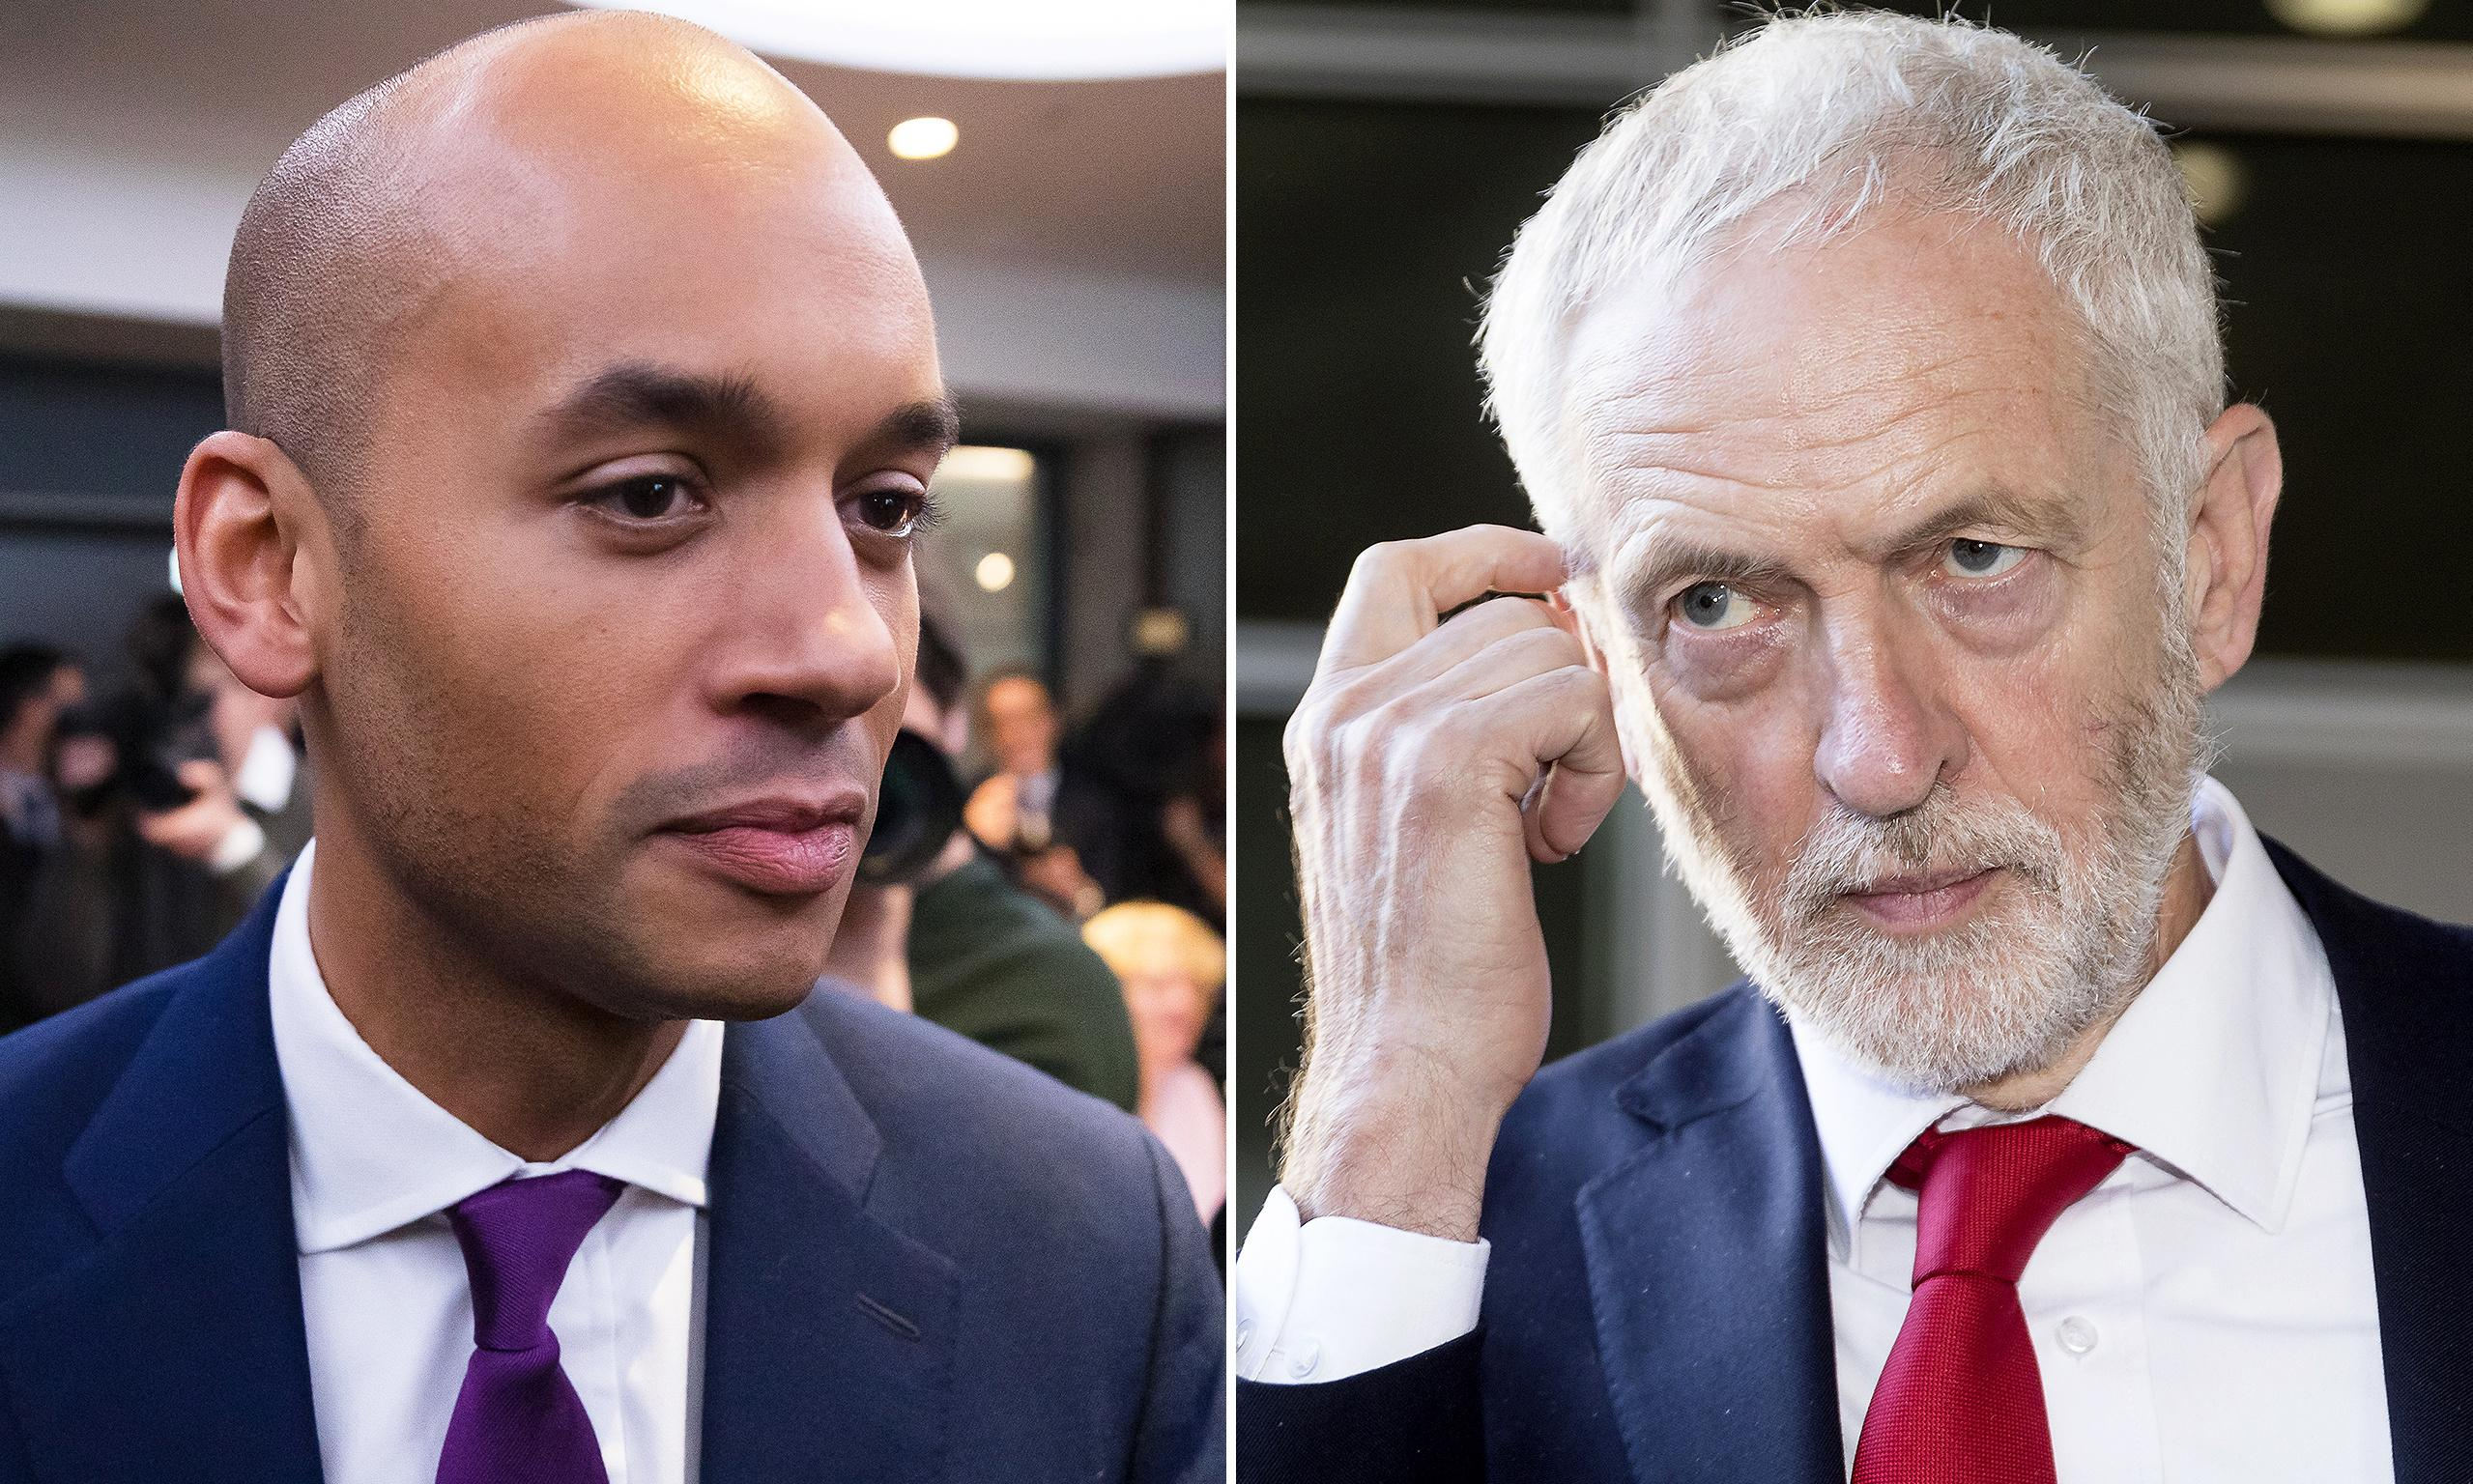 Corbyn walks out of PM's Brexit meeting over Umunna invitation